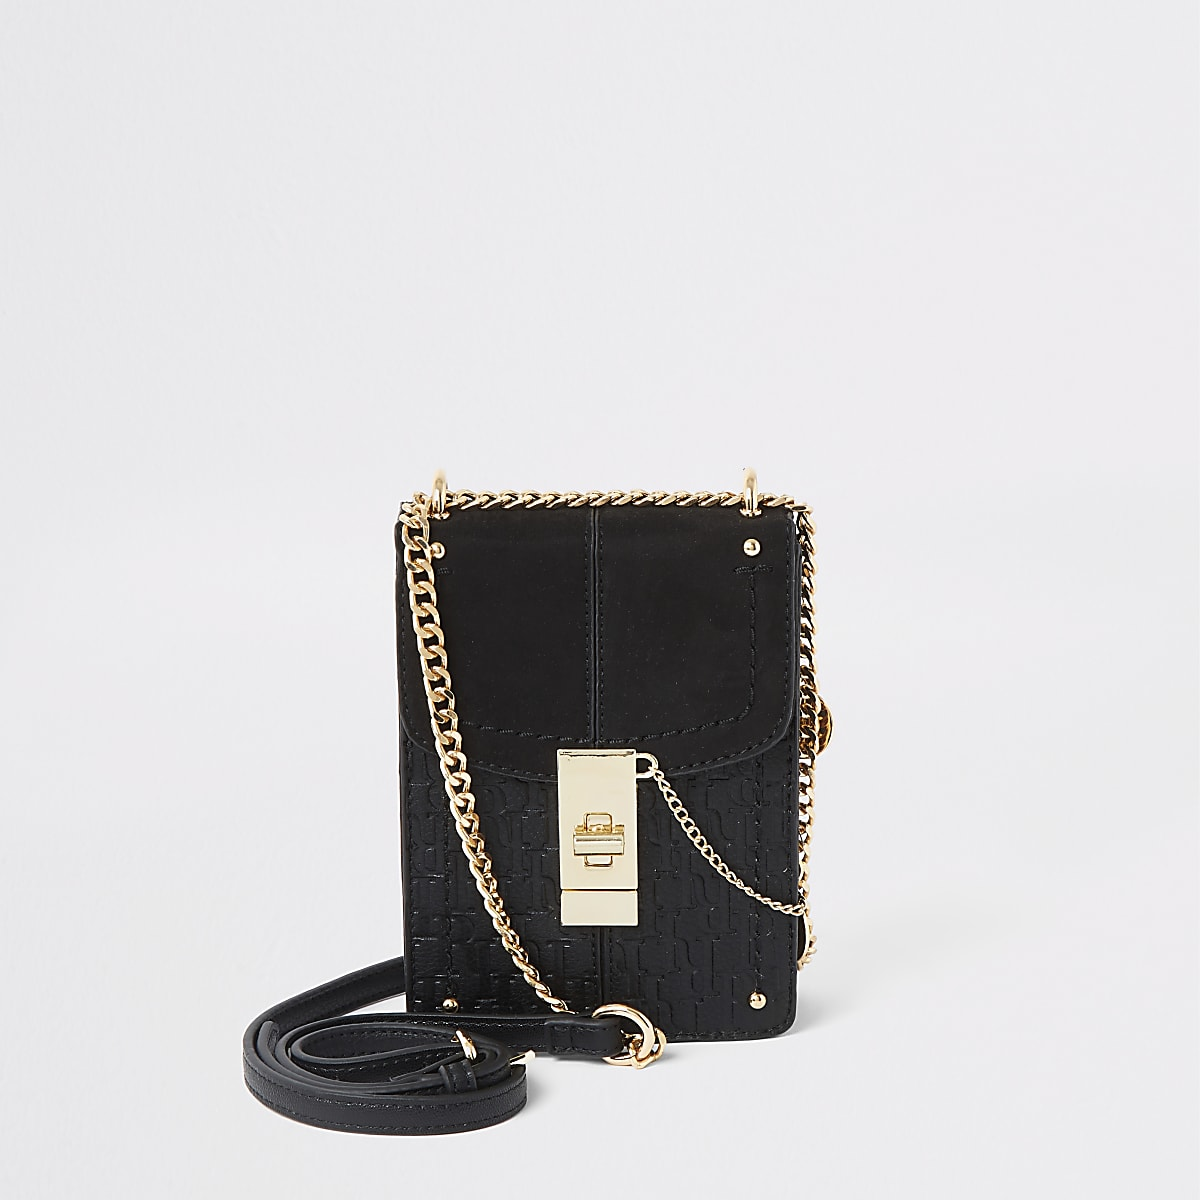 Black RI monogram lock front cross body bag